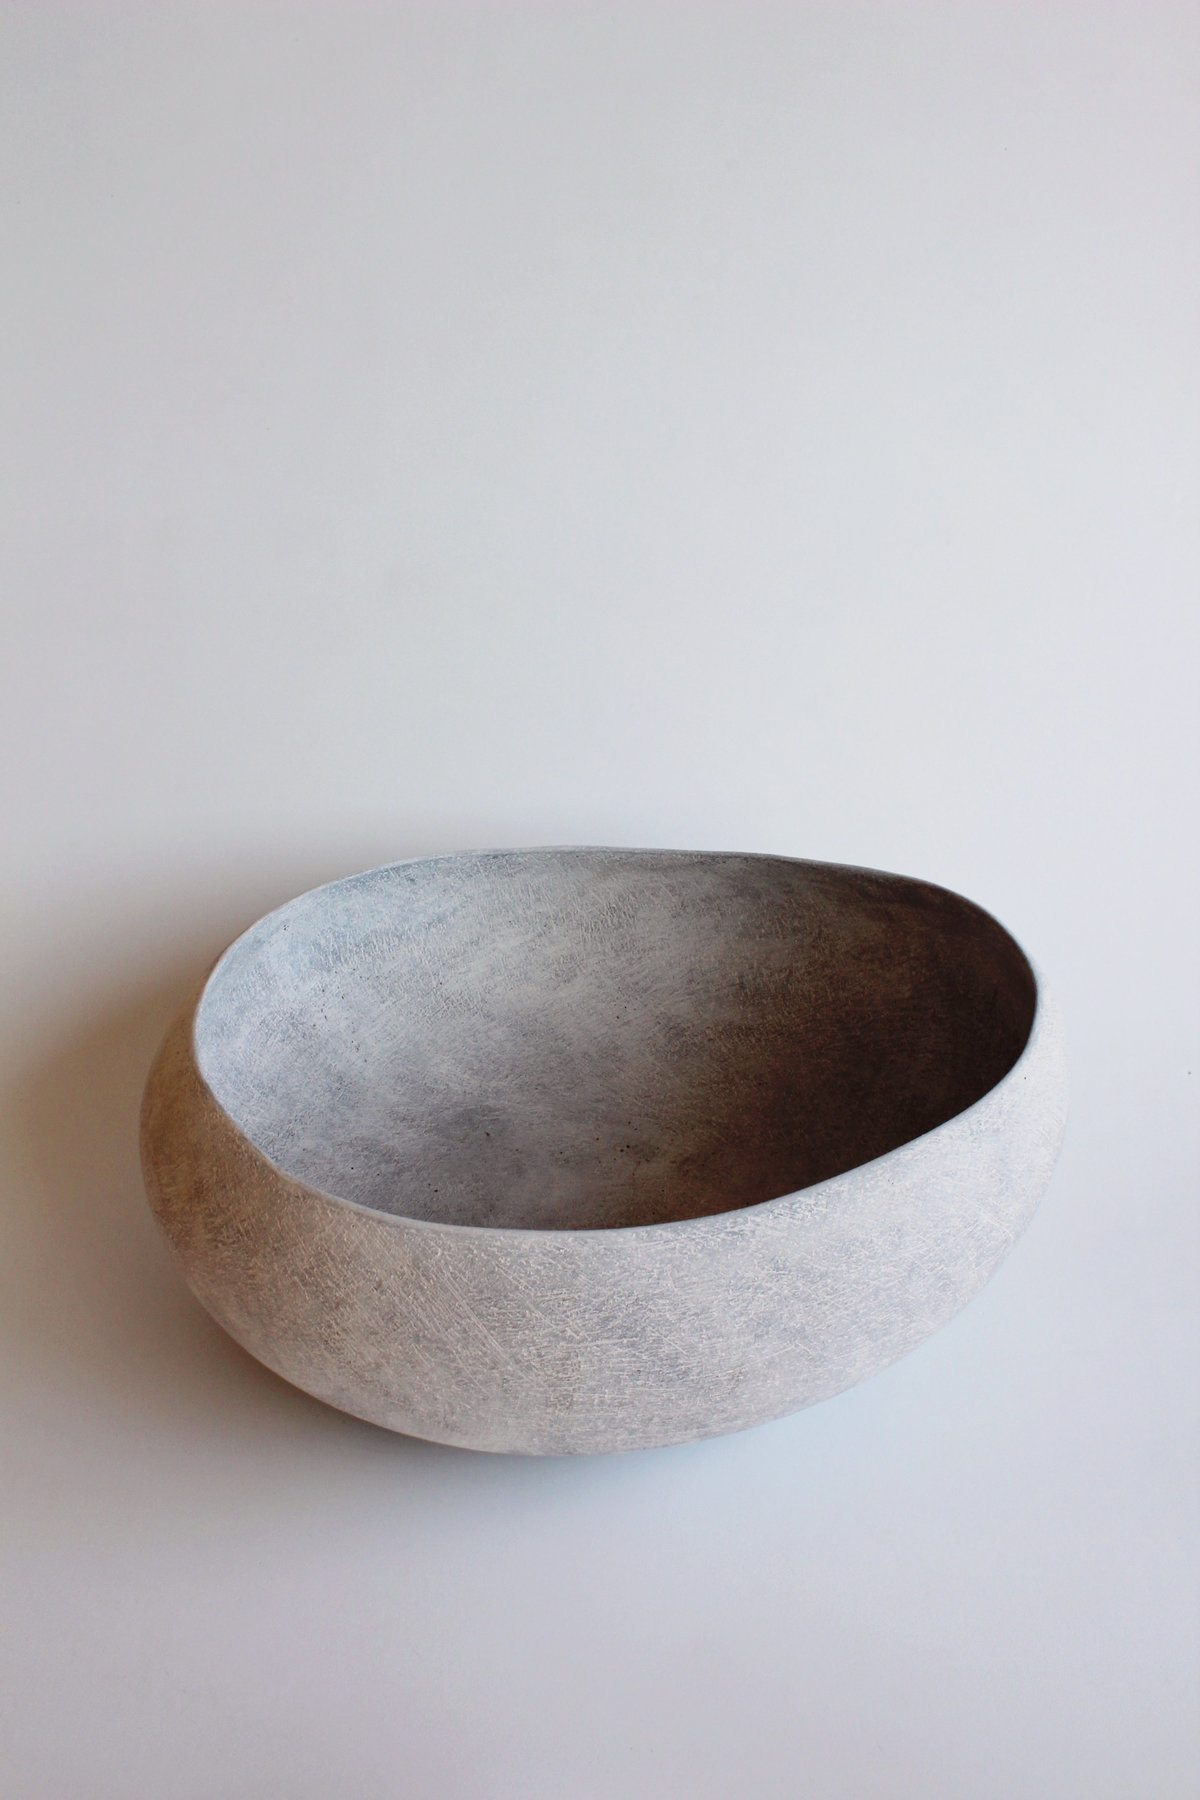 Yasha-Butler-Ceramic-Sculpture-Bowl-White-Lithic_1431-3500px